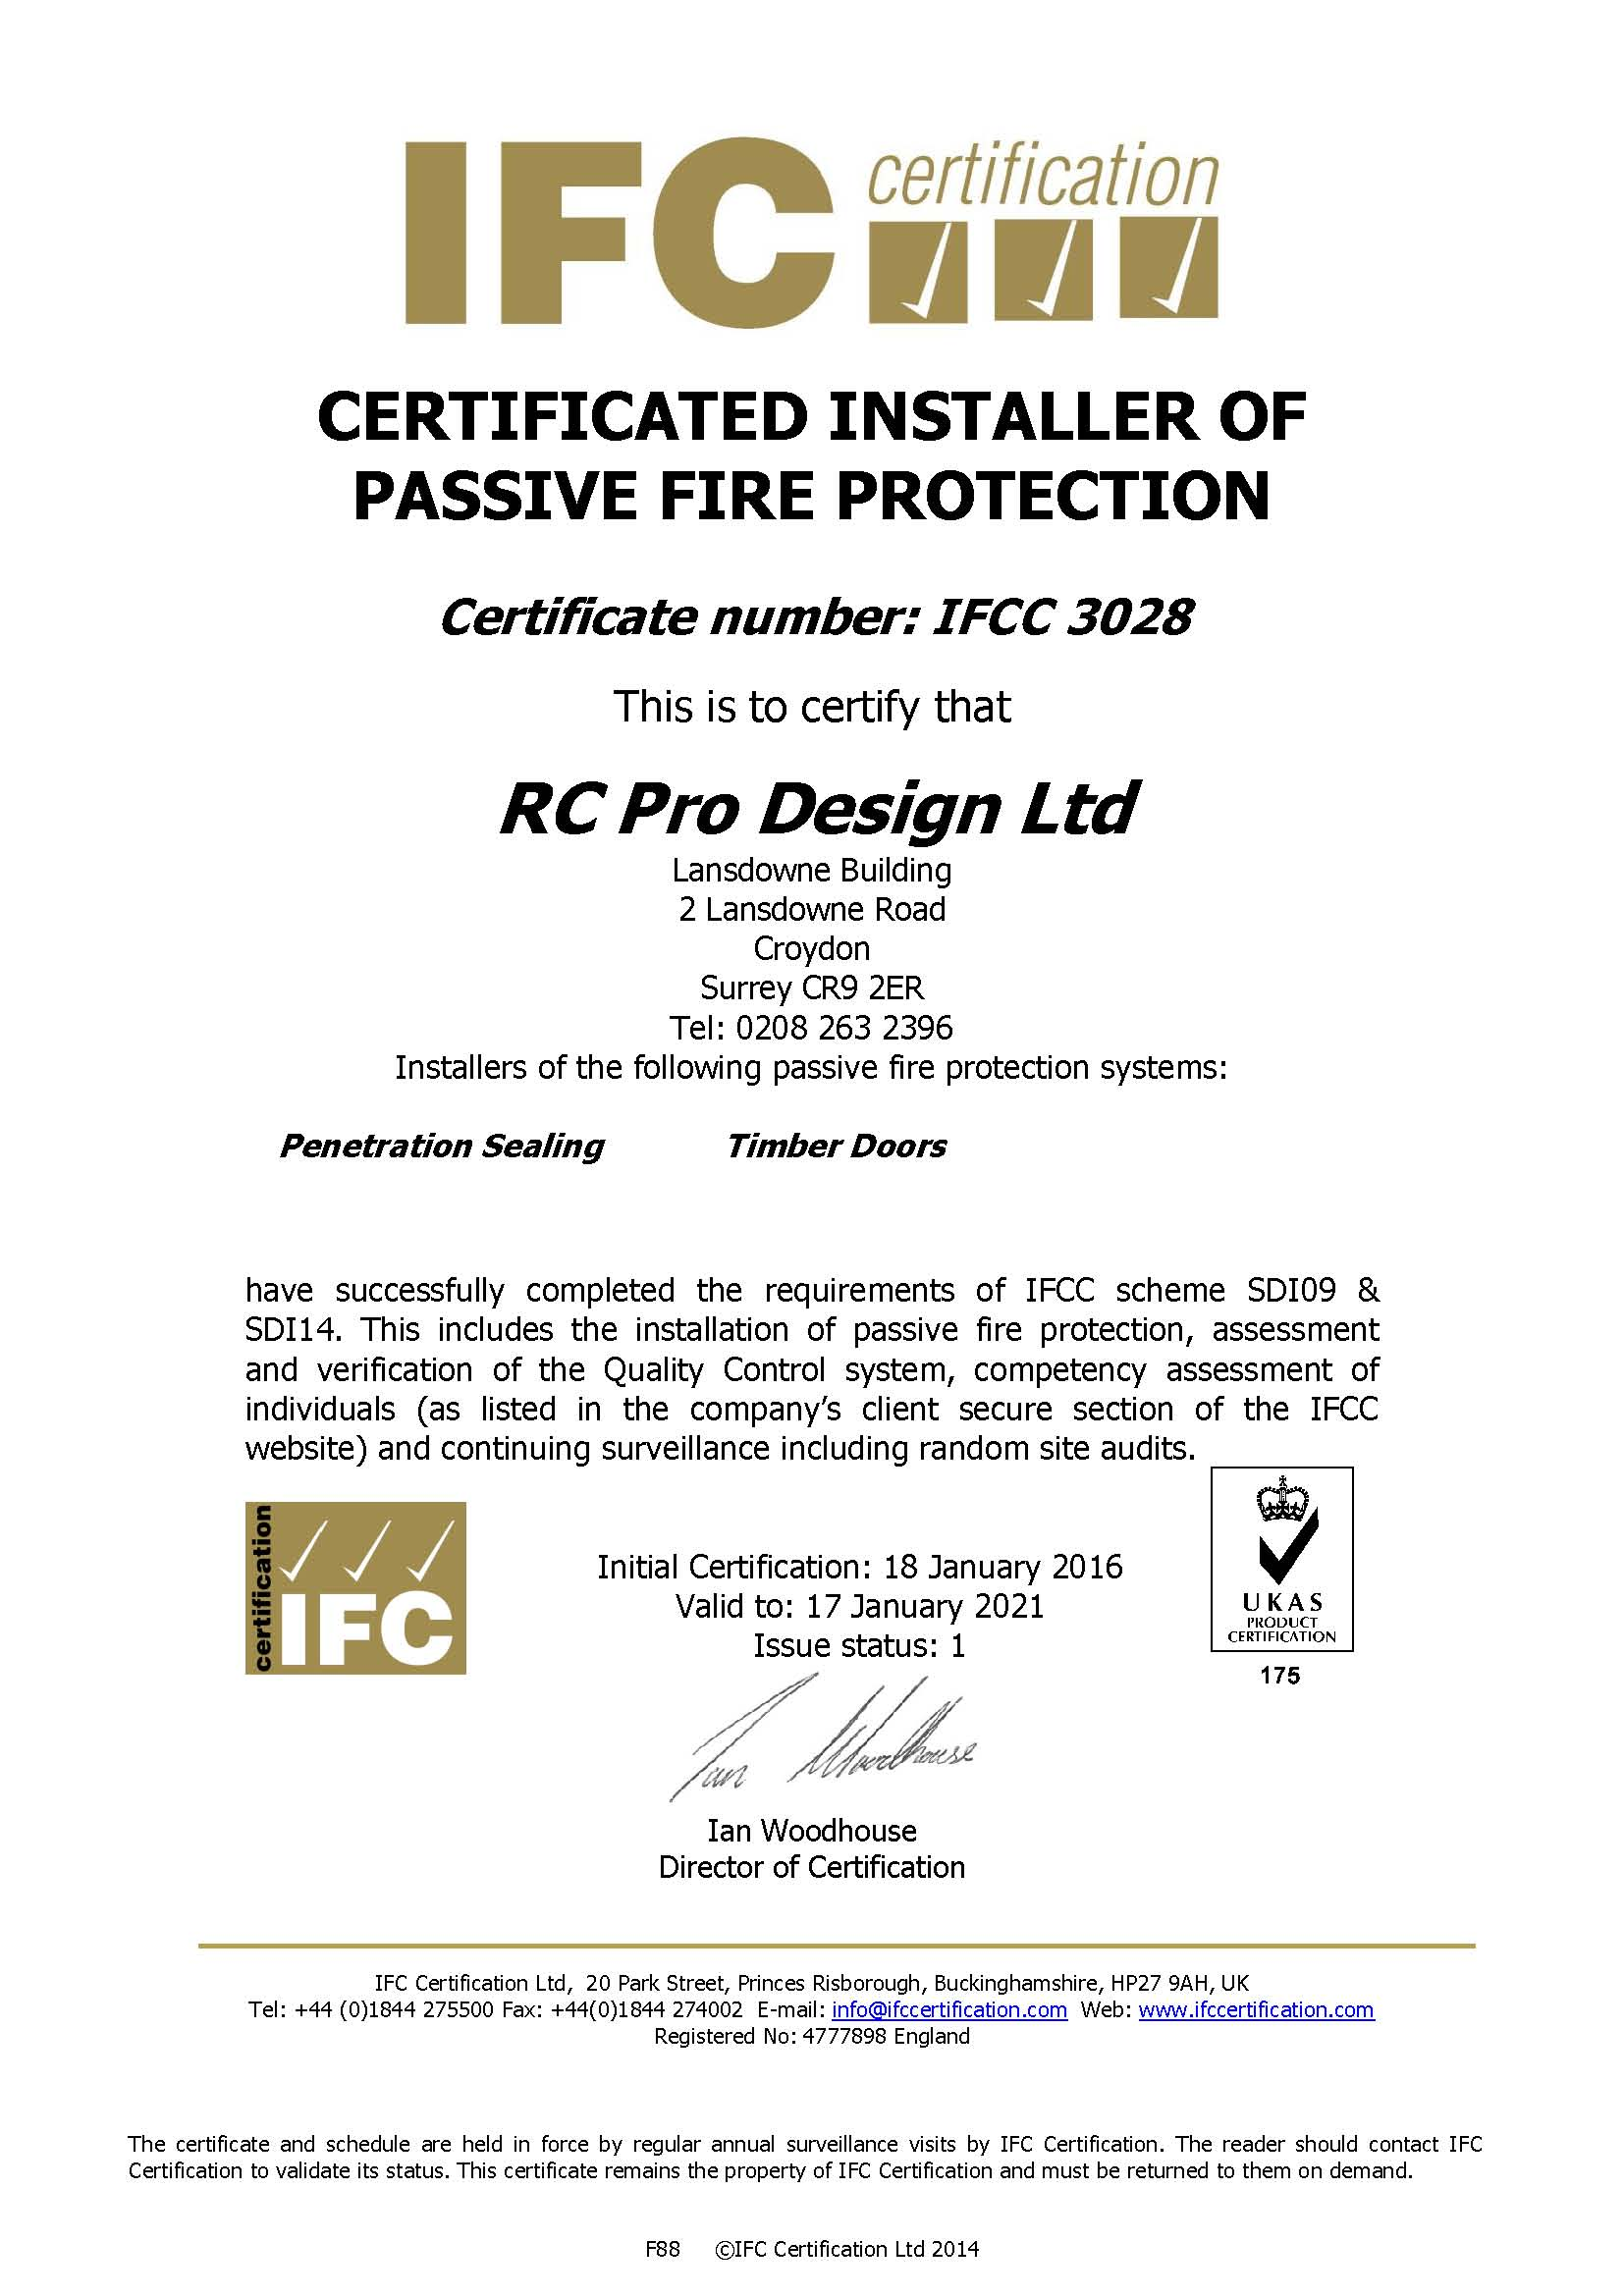 Certificated installer of passive fire protection fire protection certification for rc pro design ltd 1betcityfo Gallery